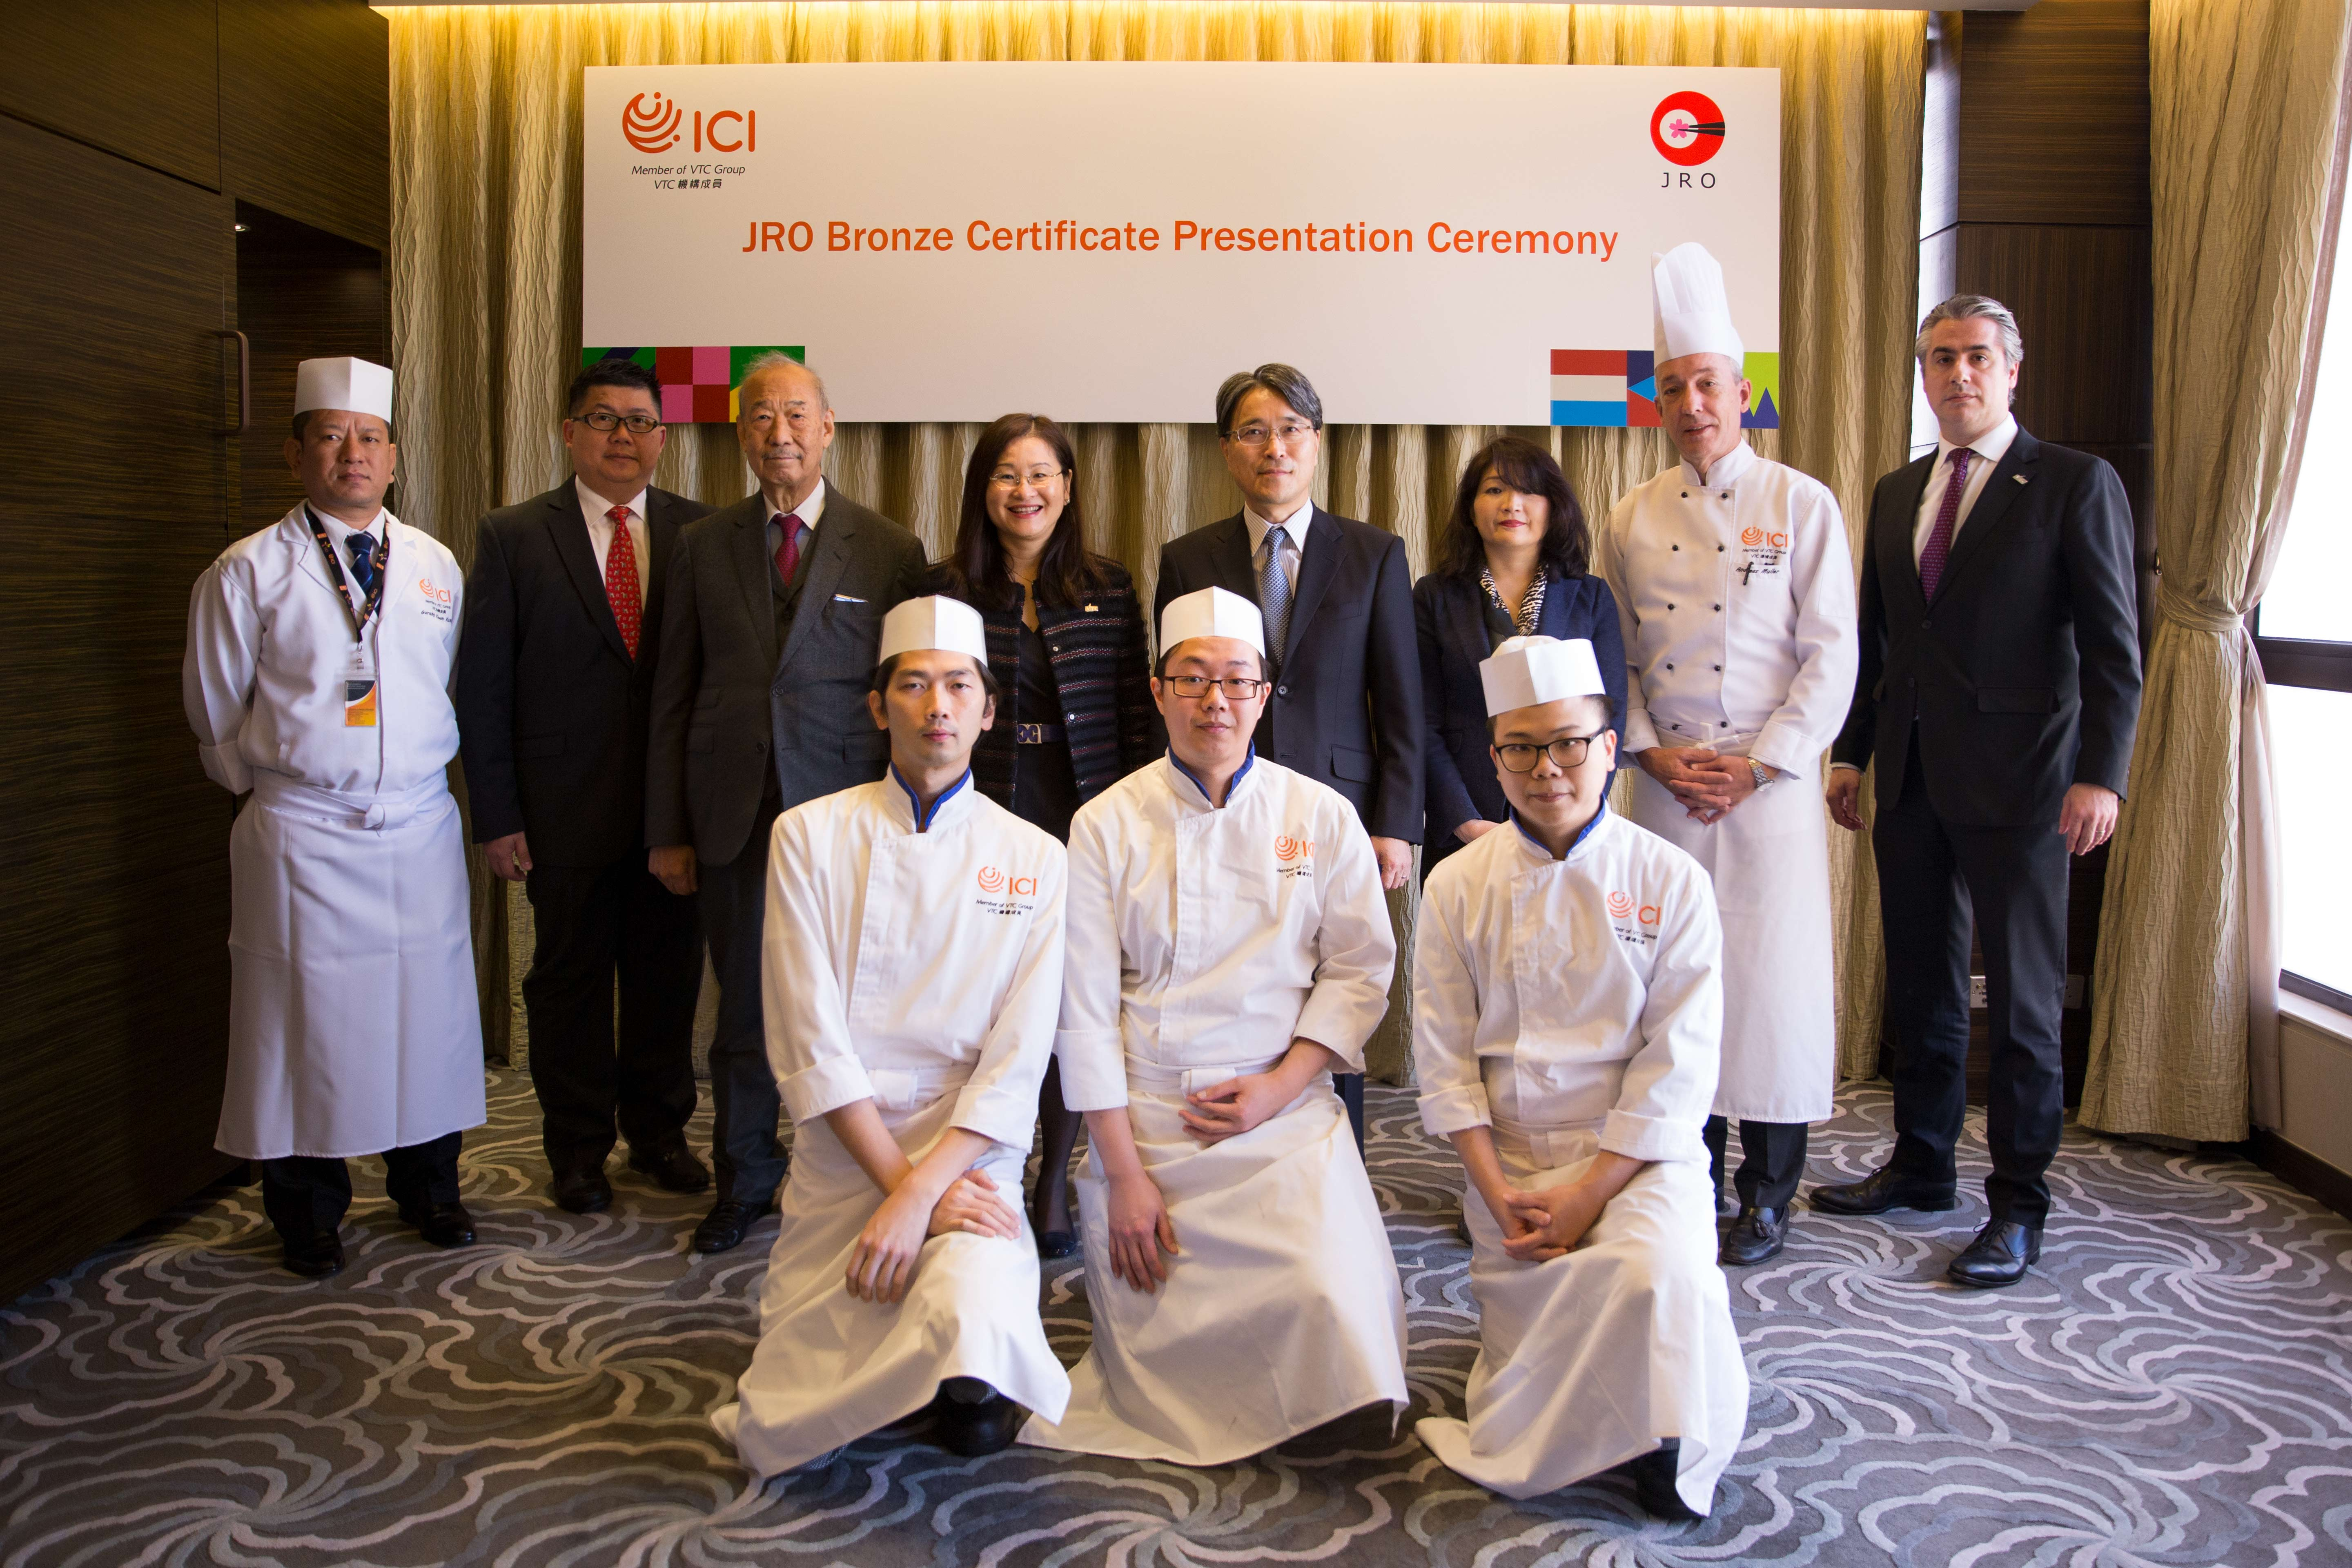 ICI students were awarded JRO Bronze Certificate recognized in Japan